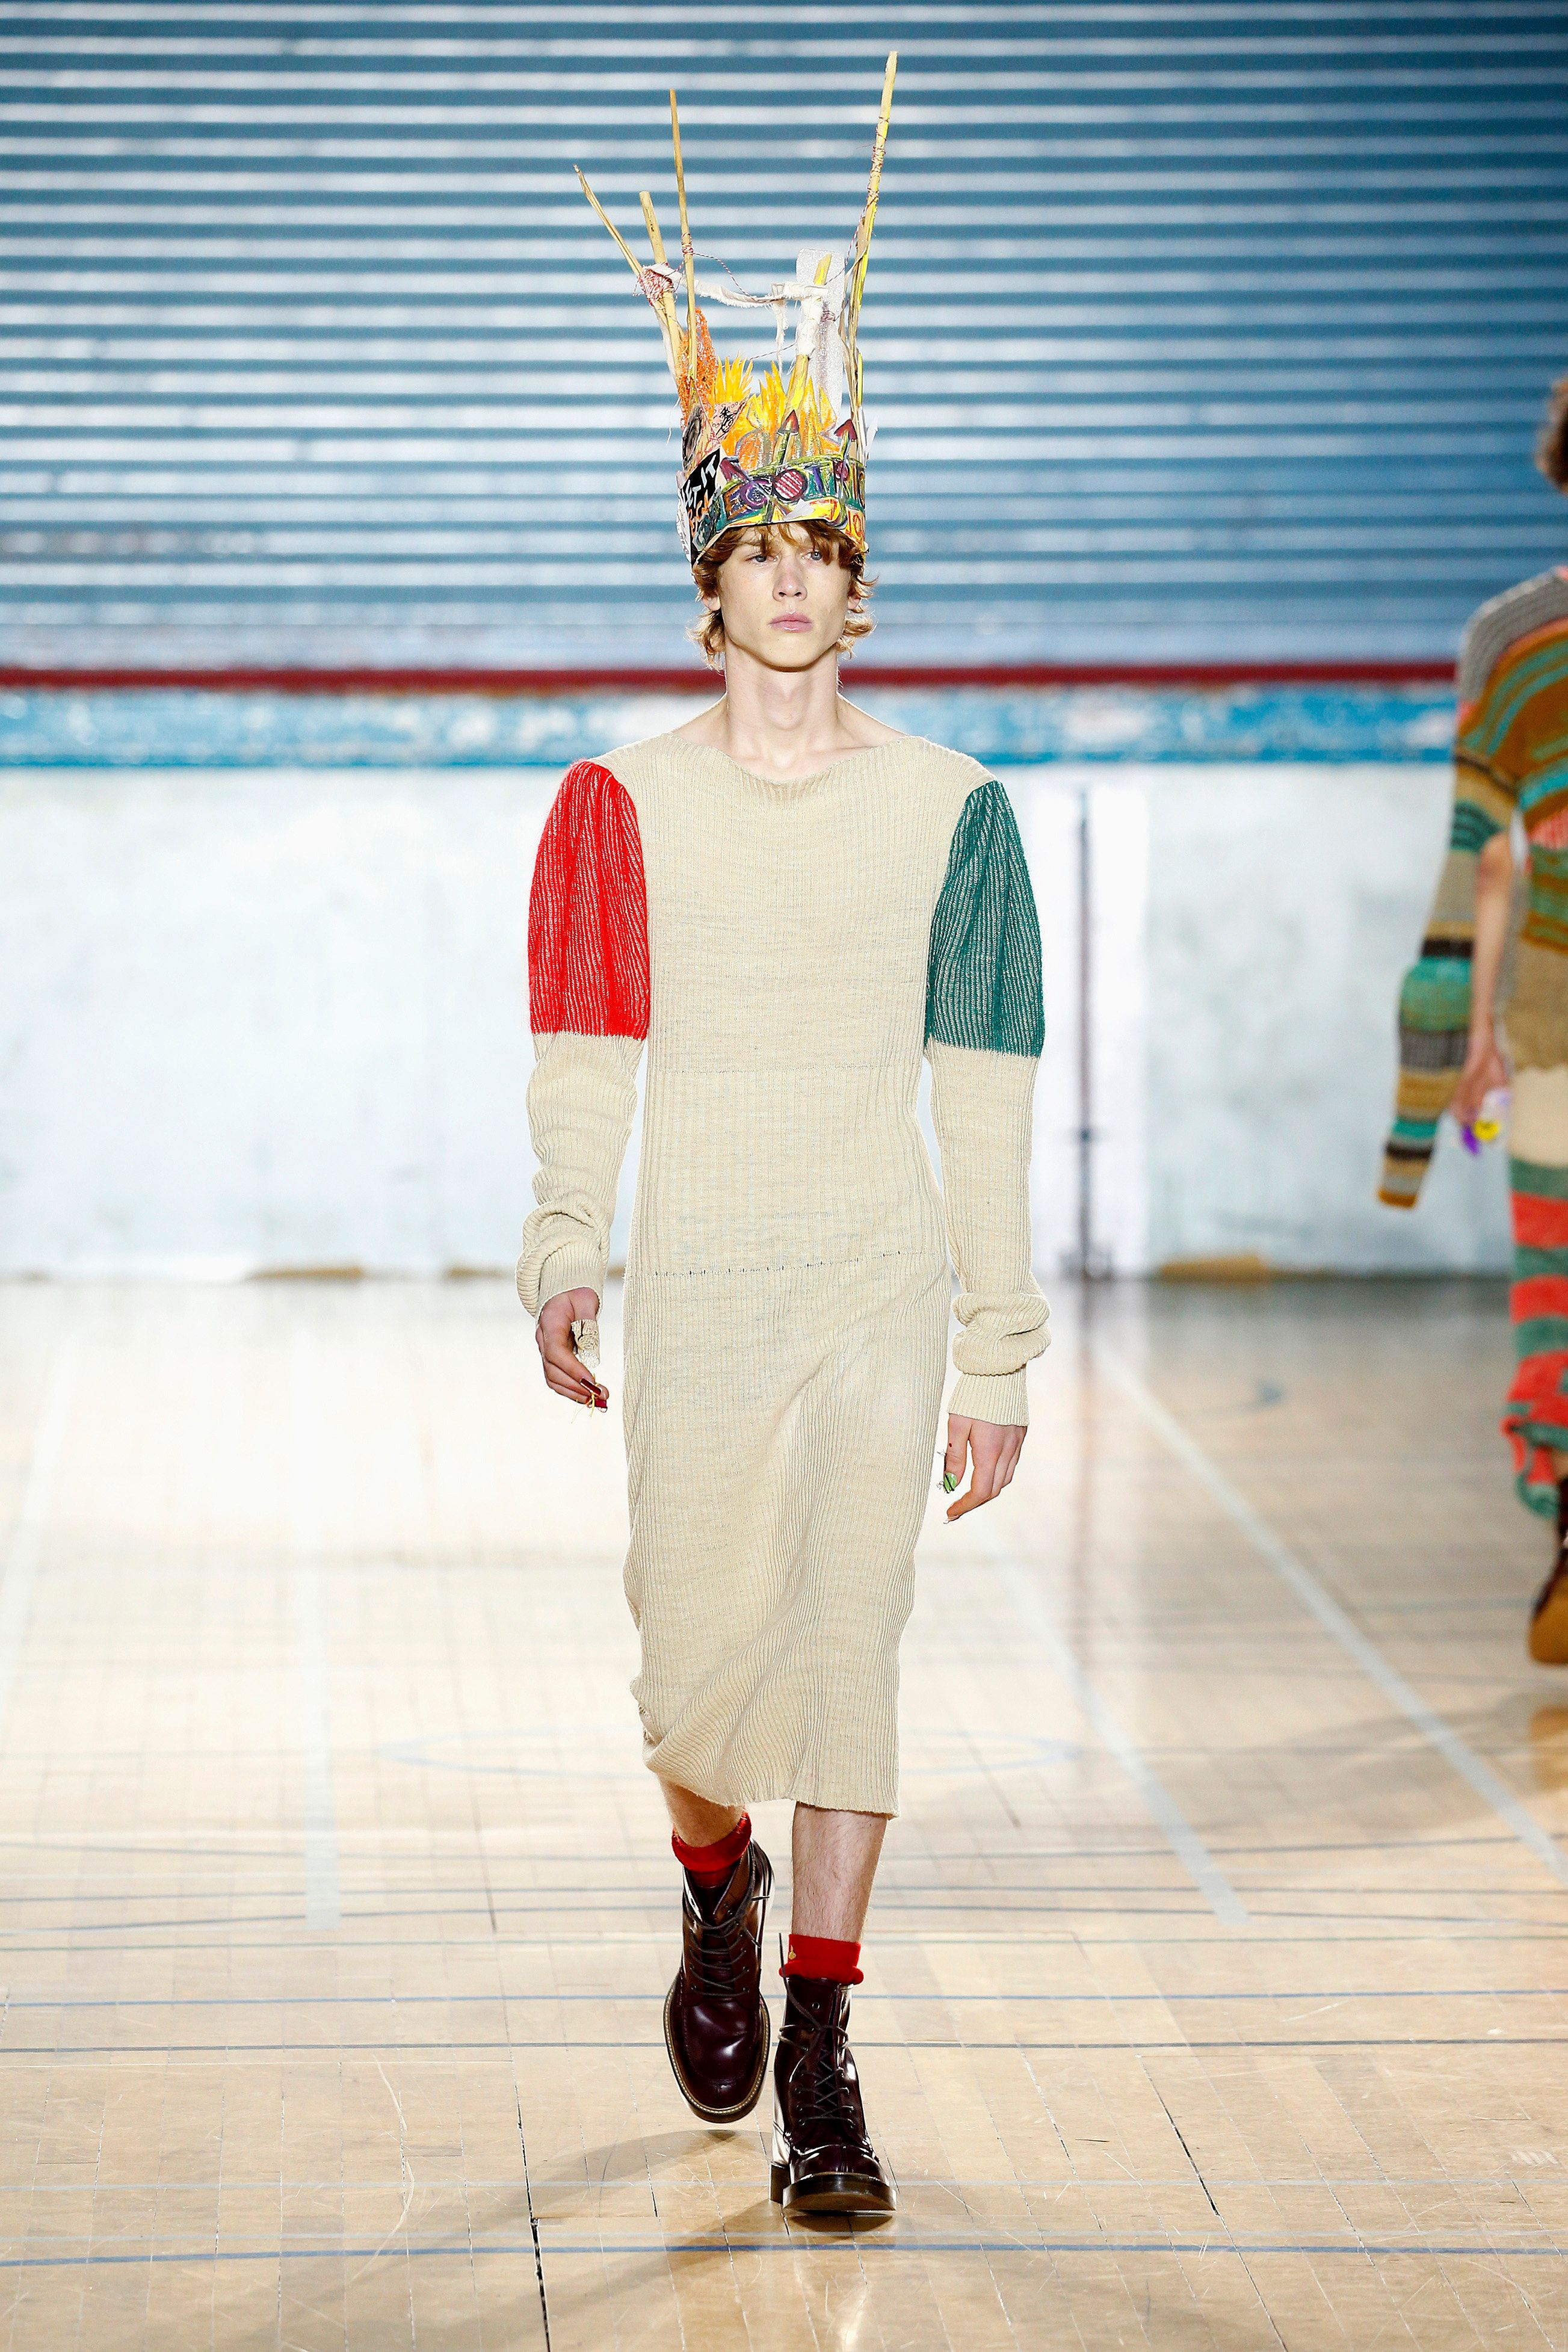 The 22 Most Outrageous Looks From London Men's Fashion